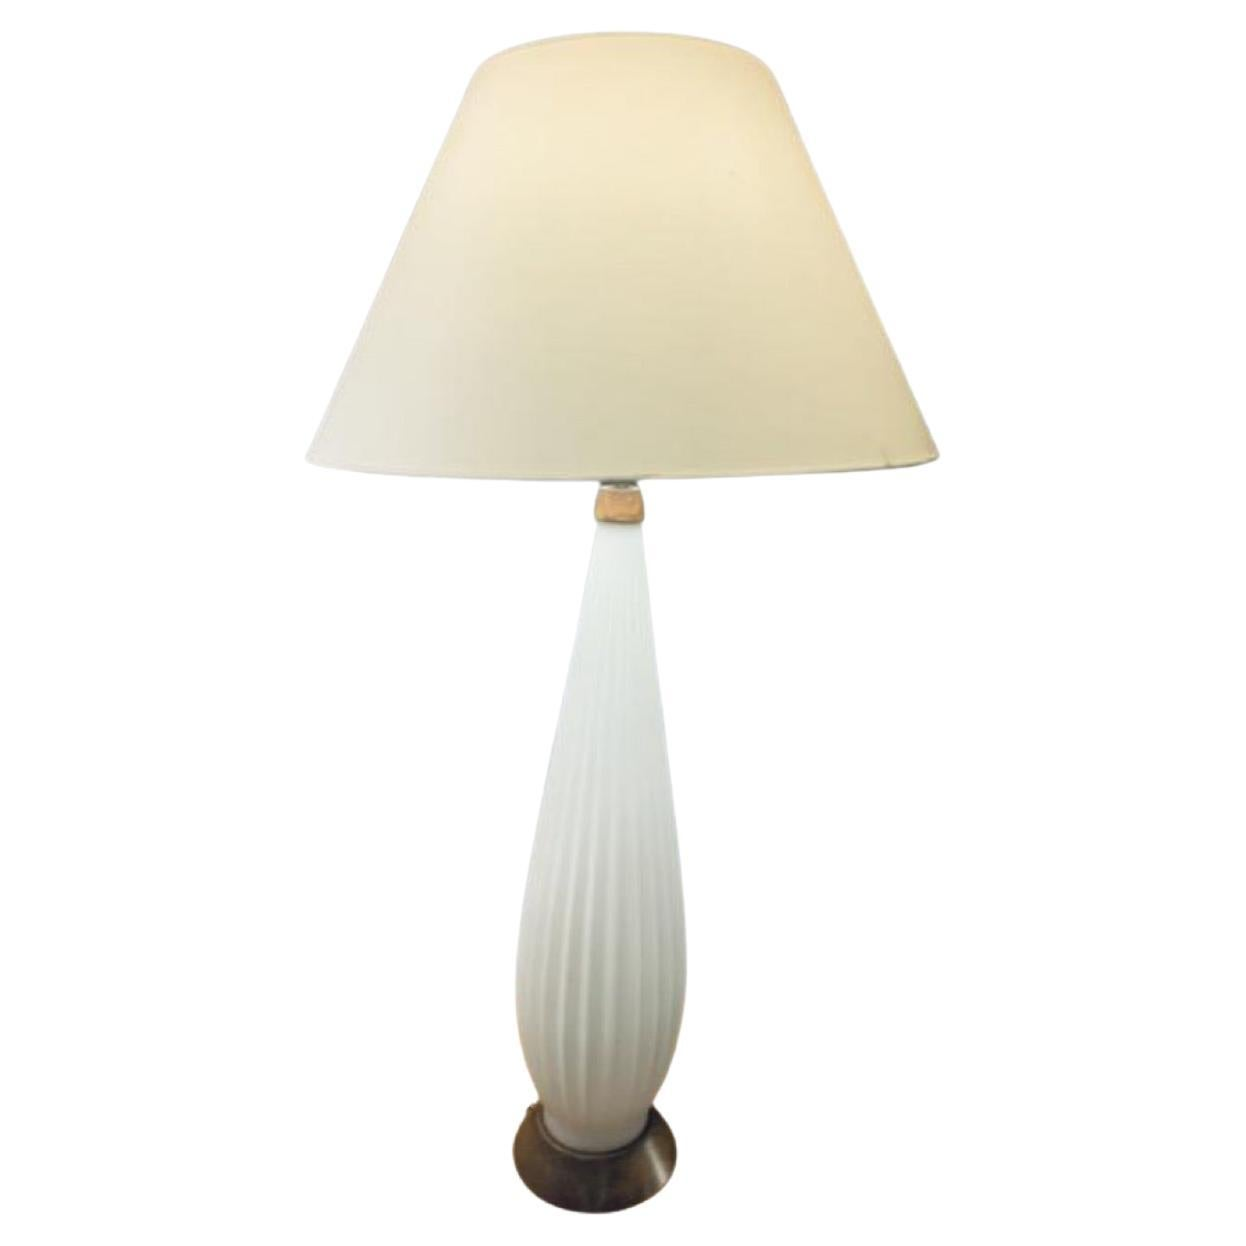 1950s Tall Alfredo Barbini Style Ribbed Opaque White Glass & Wood Table Lamp